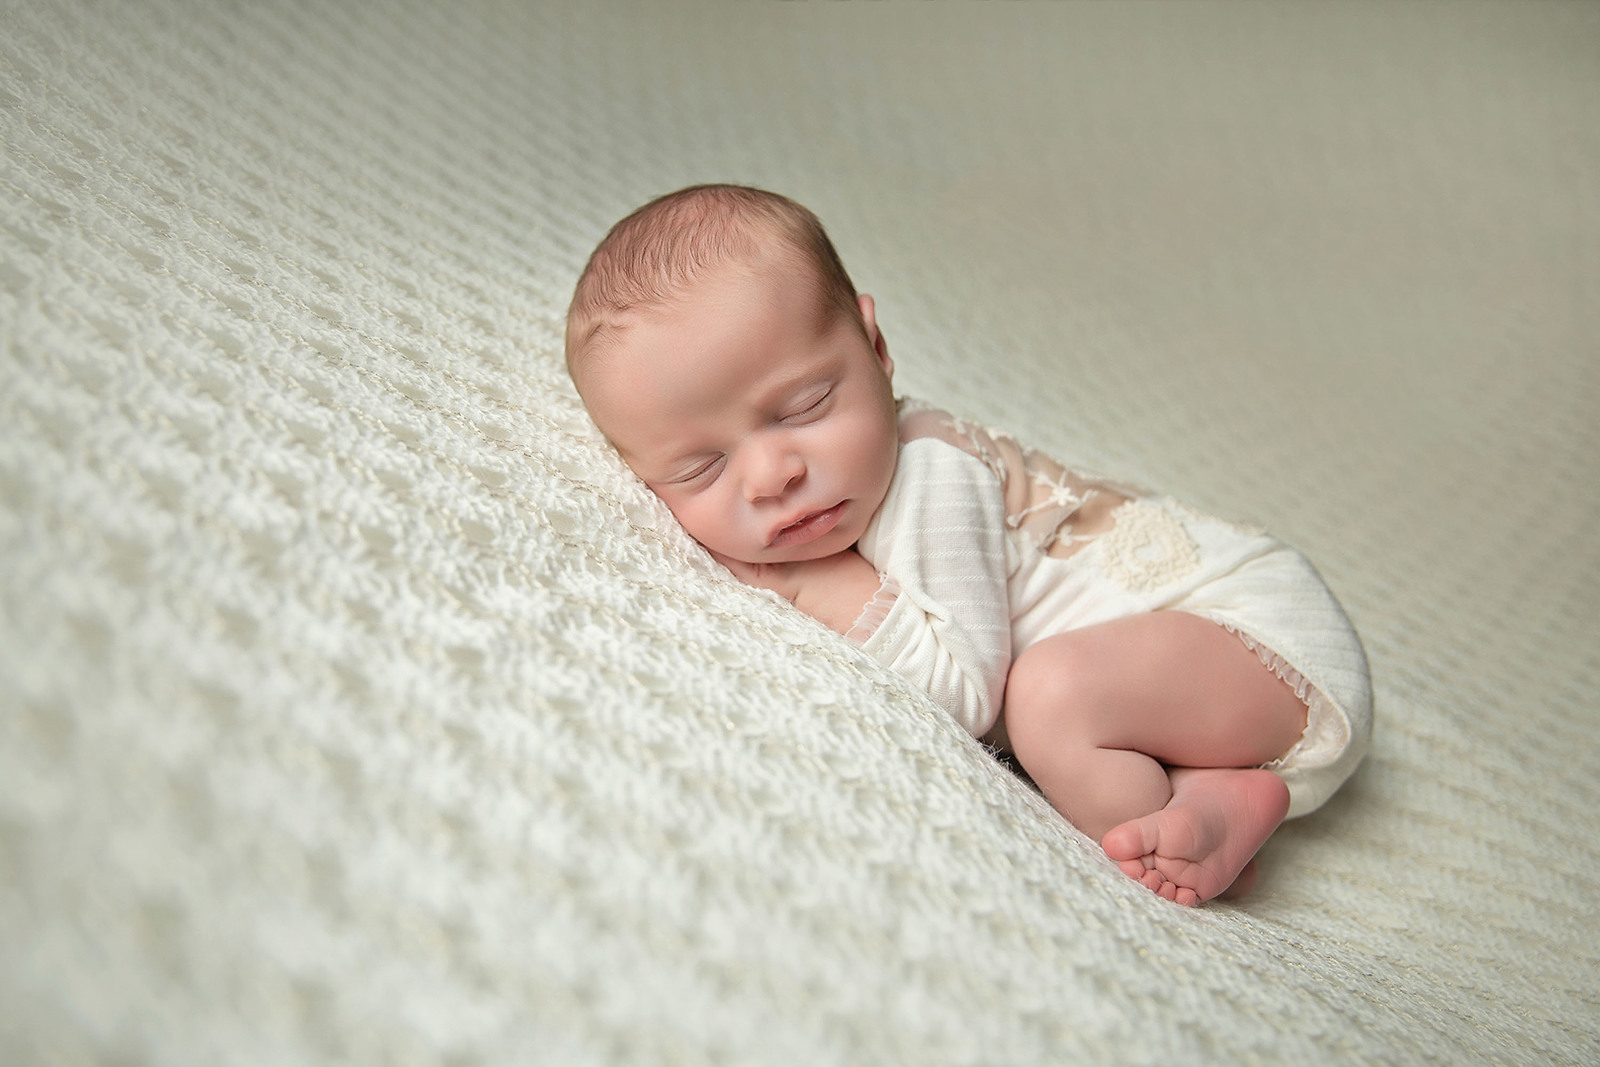 dc and northern virginia newborn photographer